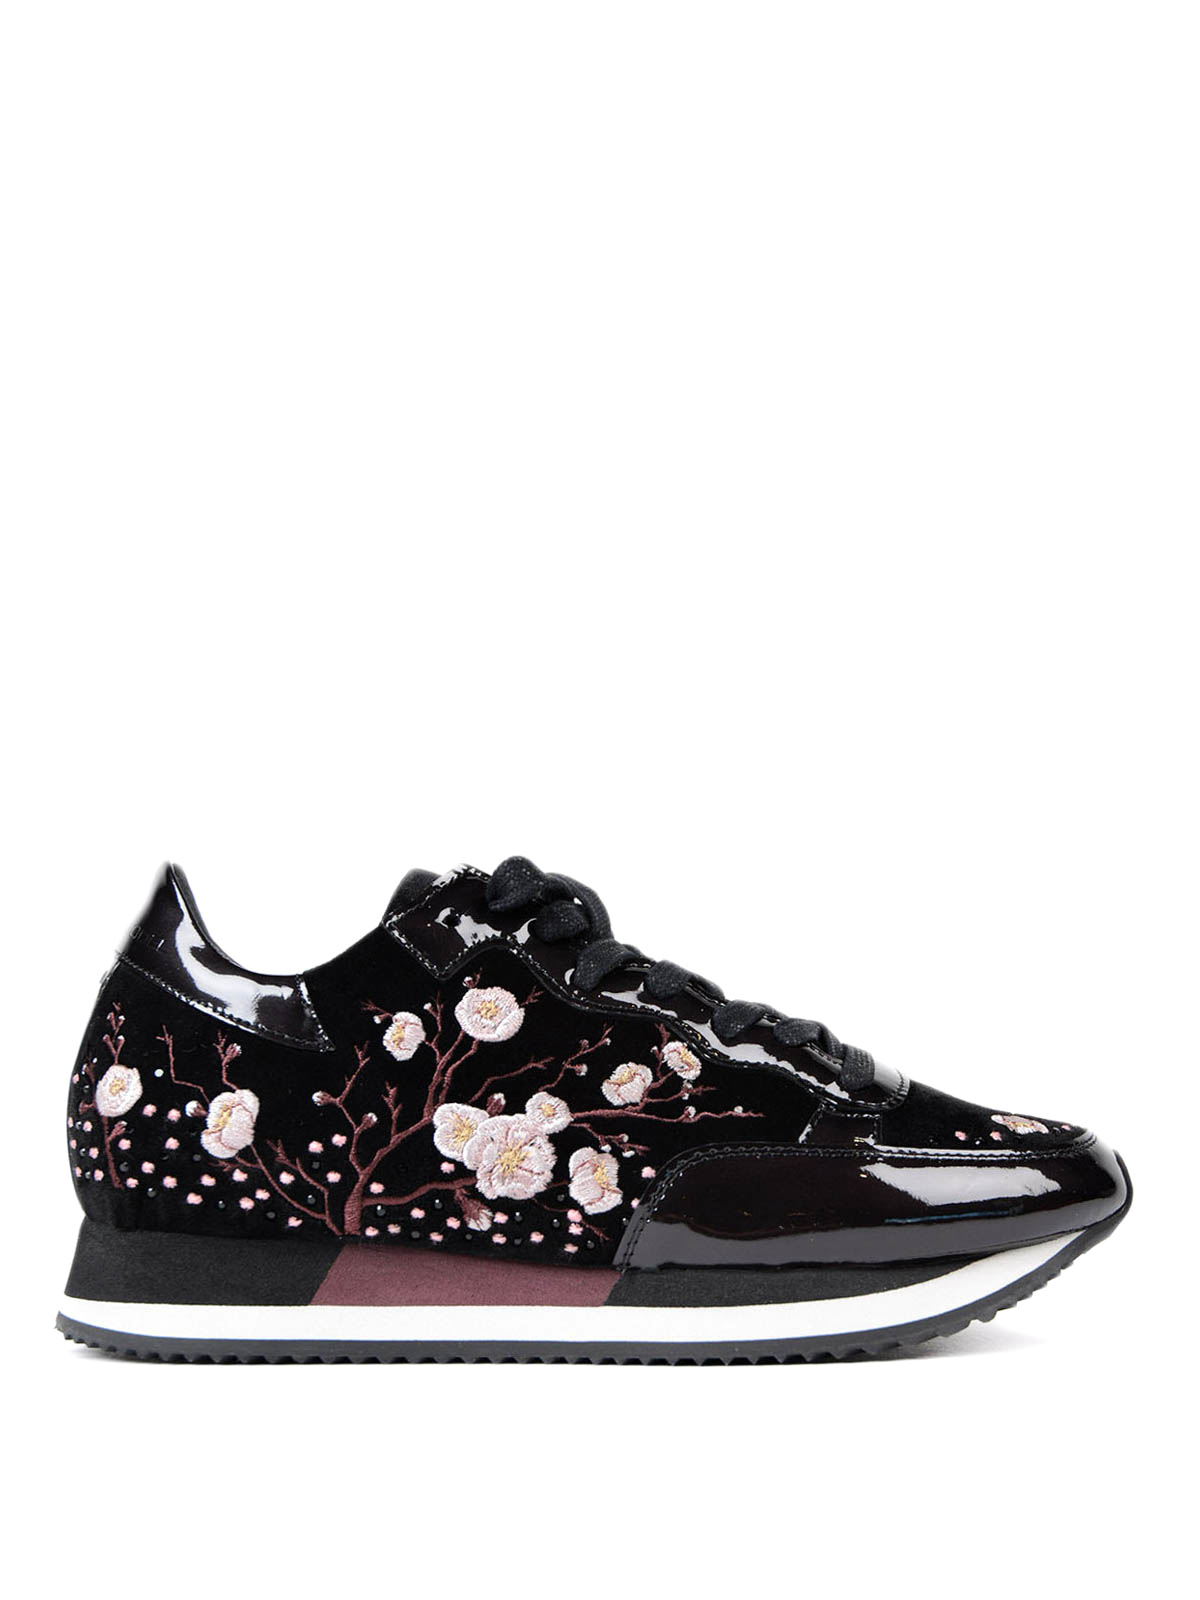 56426c5357 philippe-model-trainers-paradis-embroidered-velvet-sneakers-00000113046f00s061.jpg